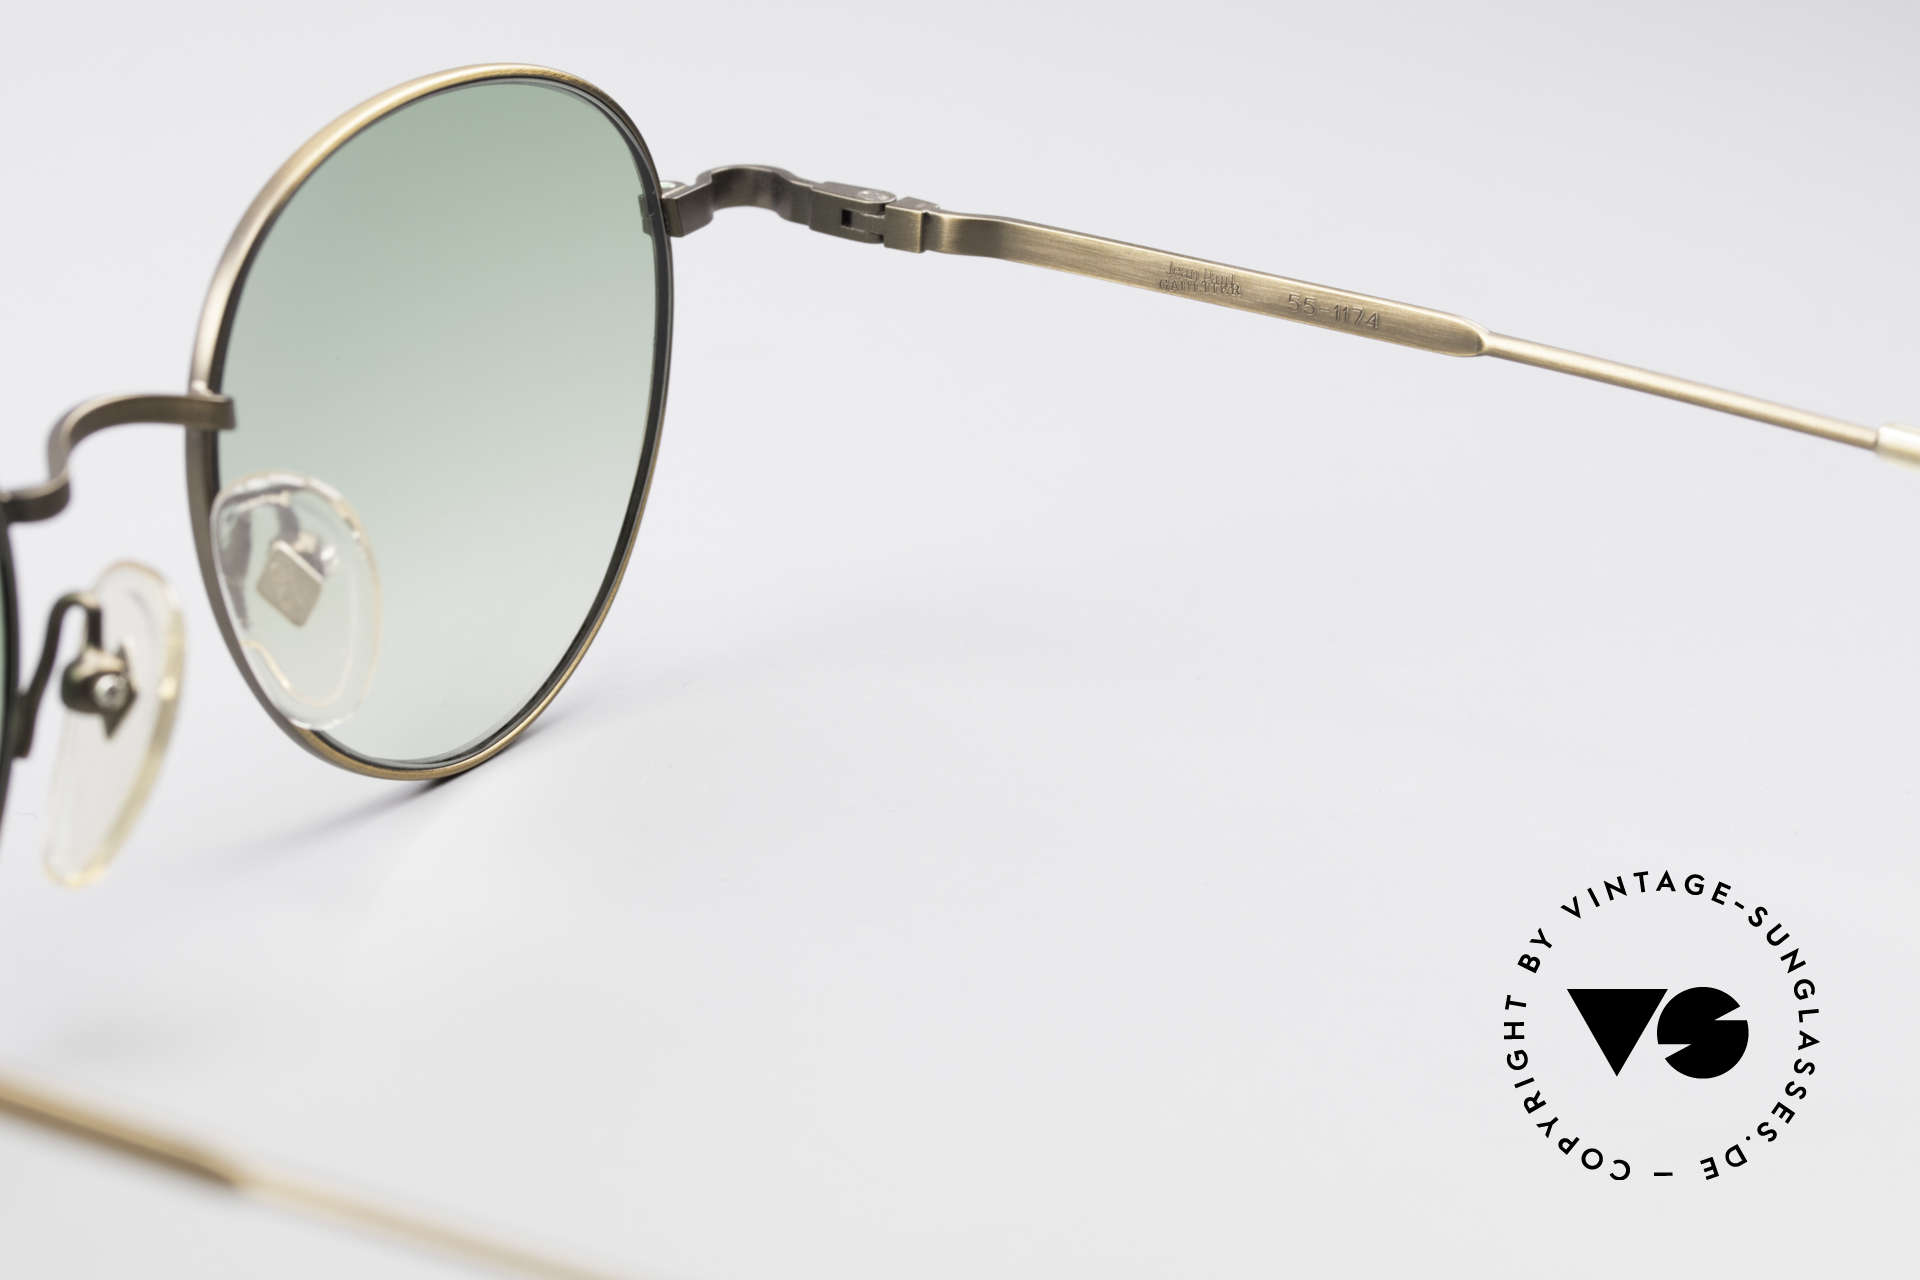 Jean Paul Gaultier 55-1174 Round Designer Sunglasses, unworn (like all our rare vintage 90's designer glasses), Made for Men and Women